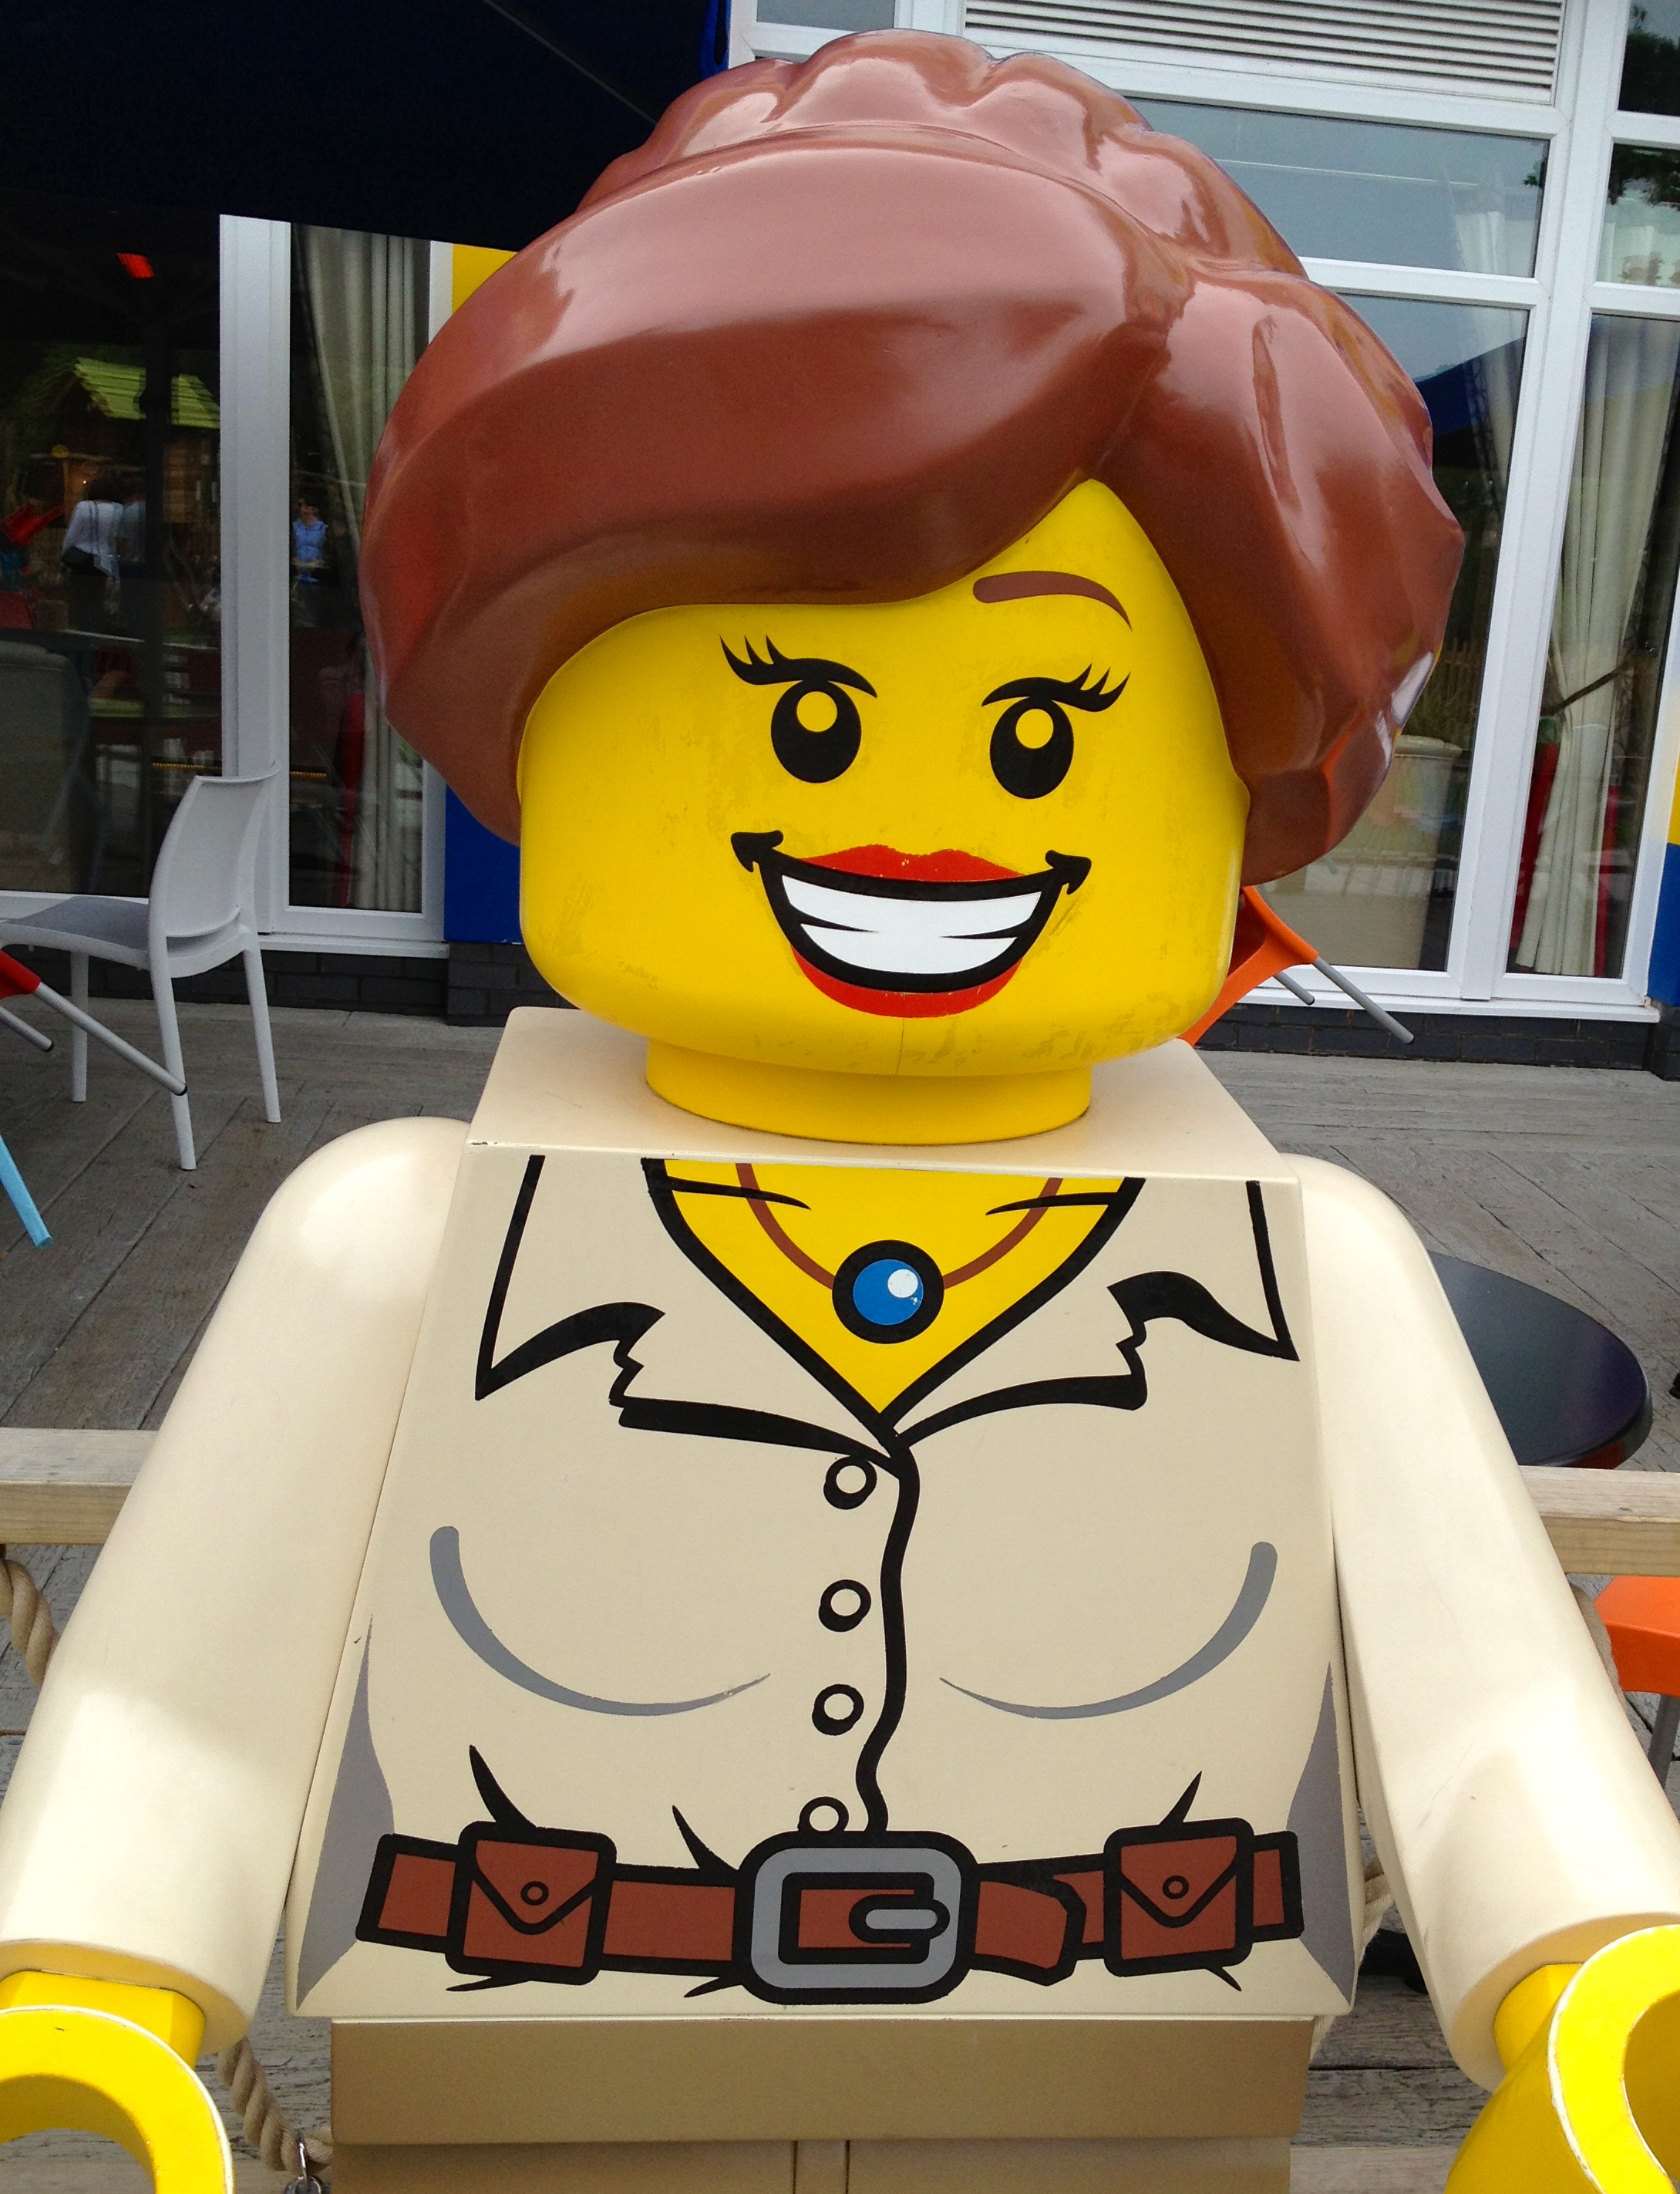 Gallery images and information: Girl Lego Faces Expressions